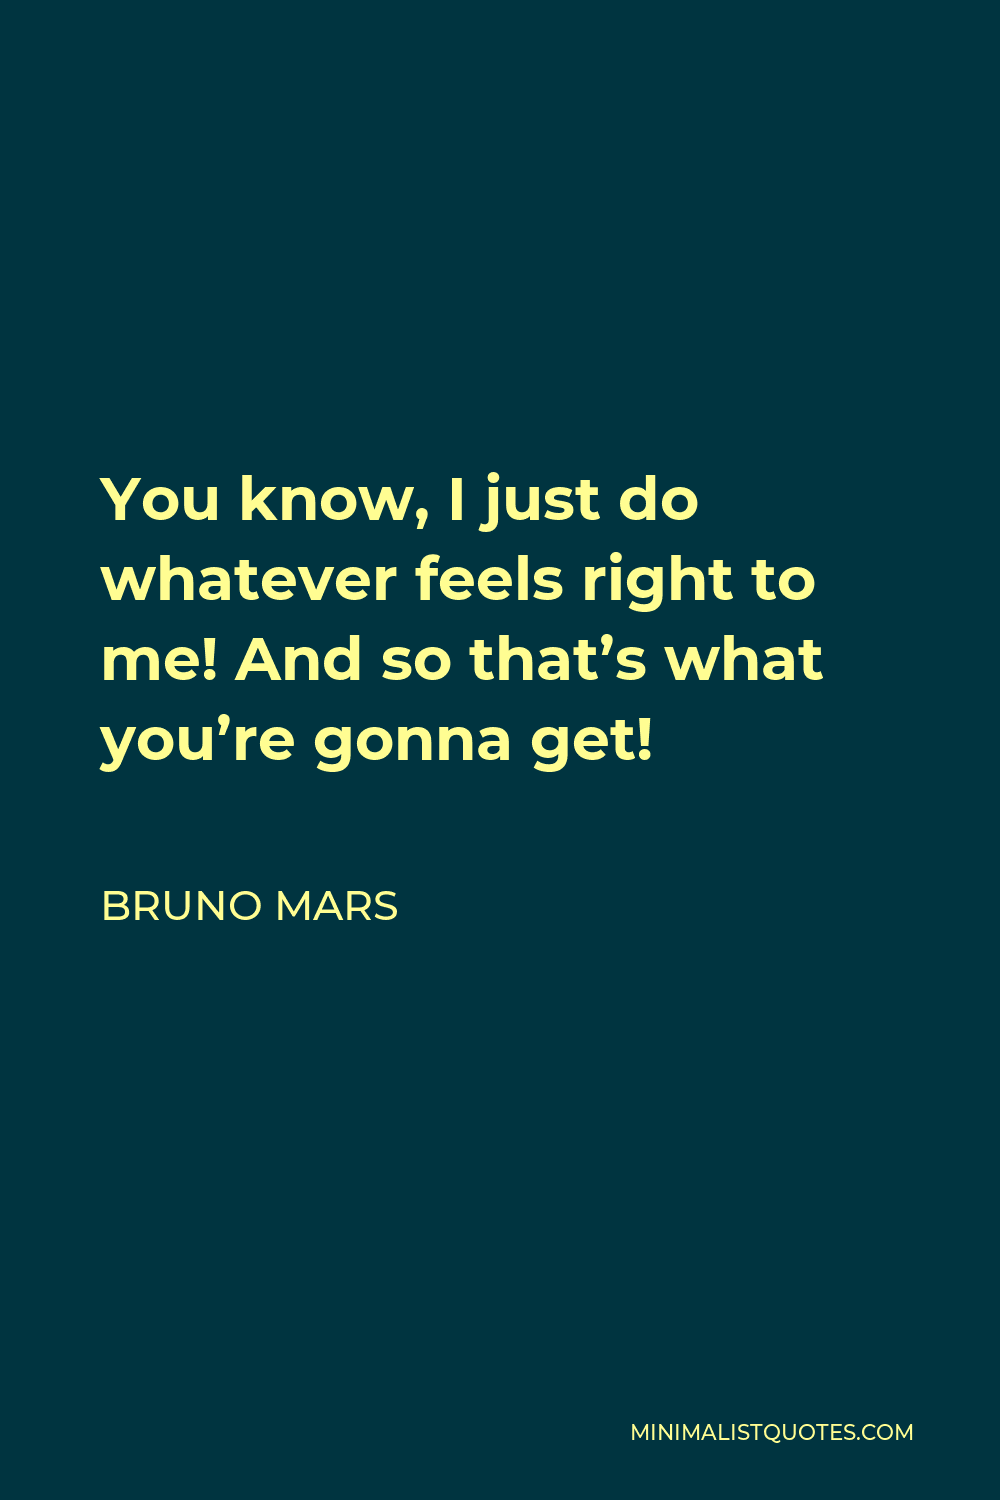 Bruno Mars Quote - You know, I just do whatever feels right to me! And so that's what you're gonna get!